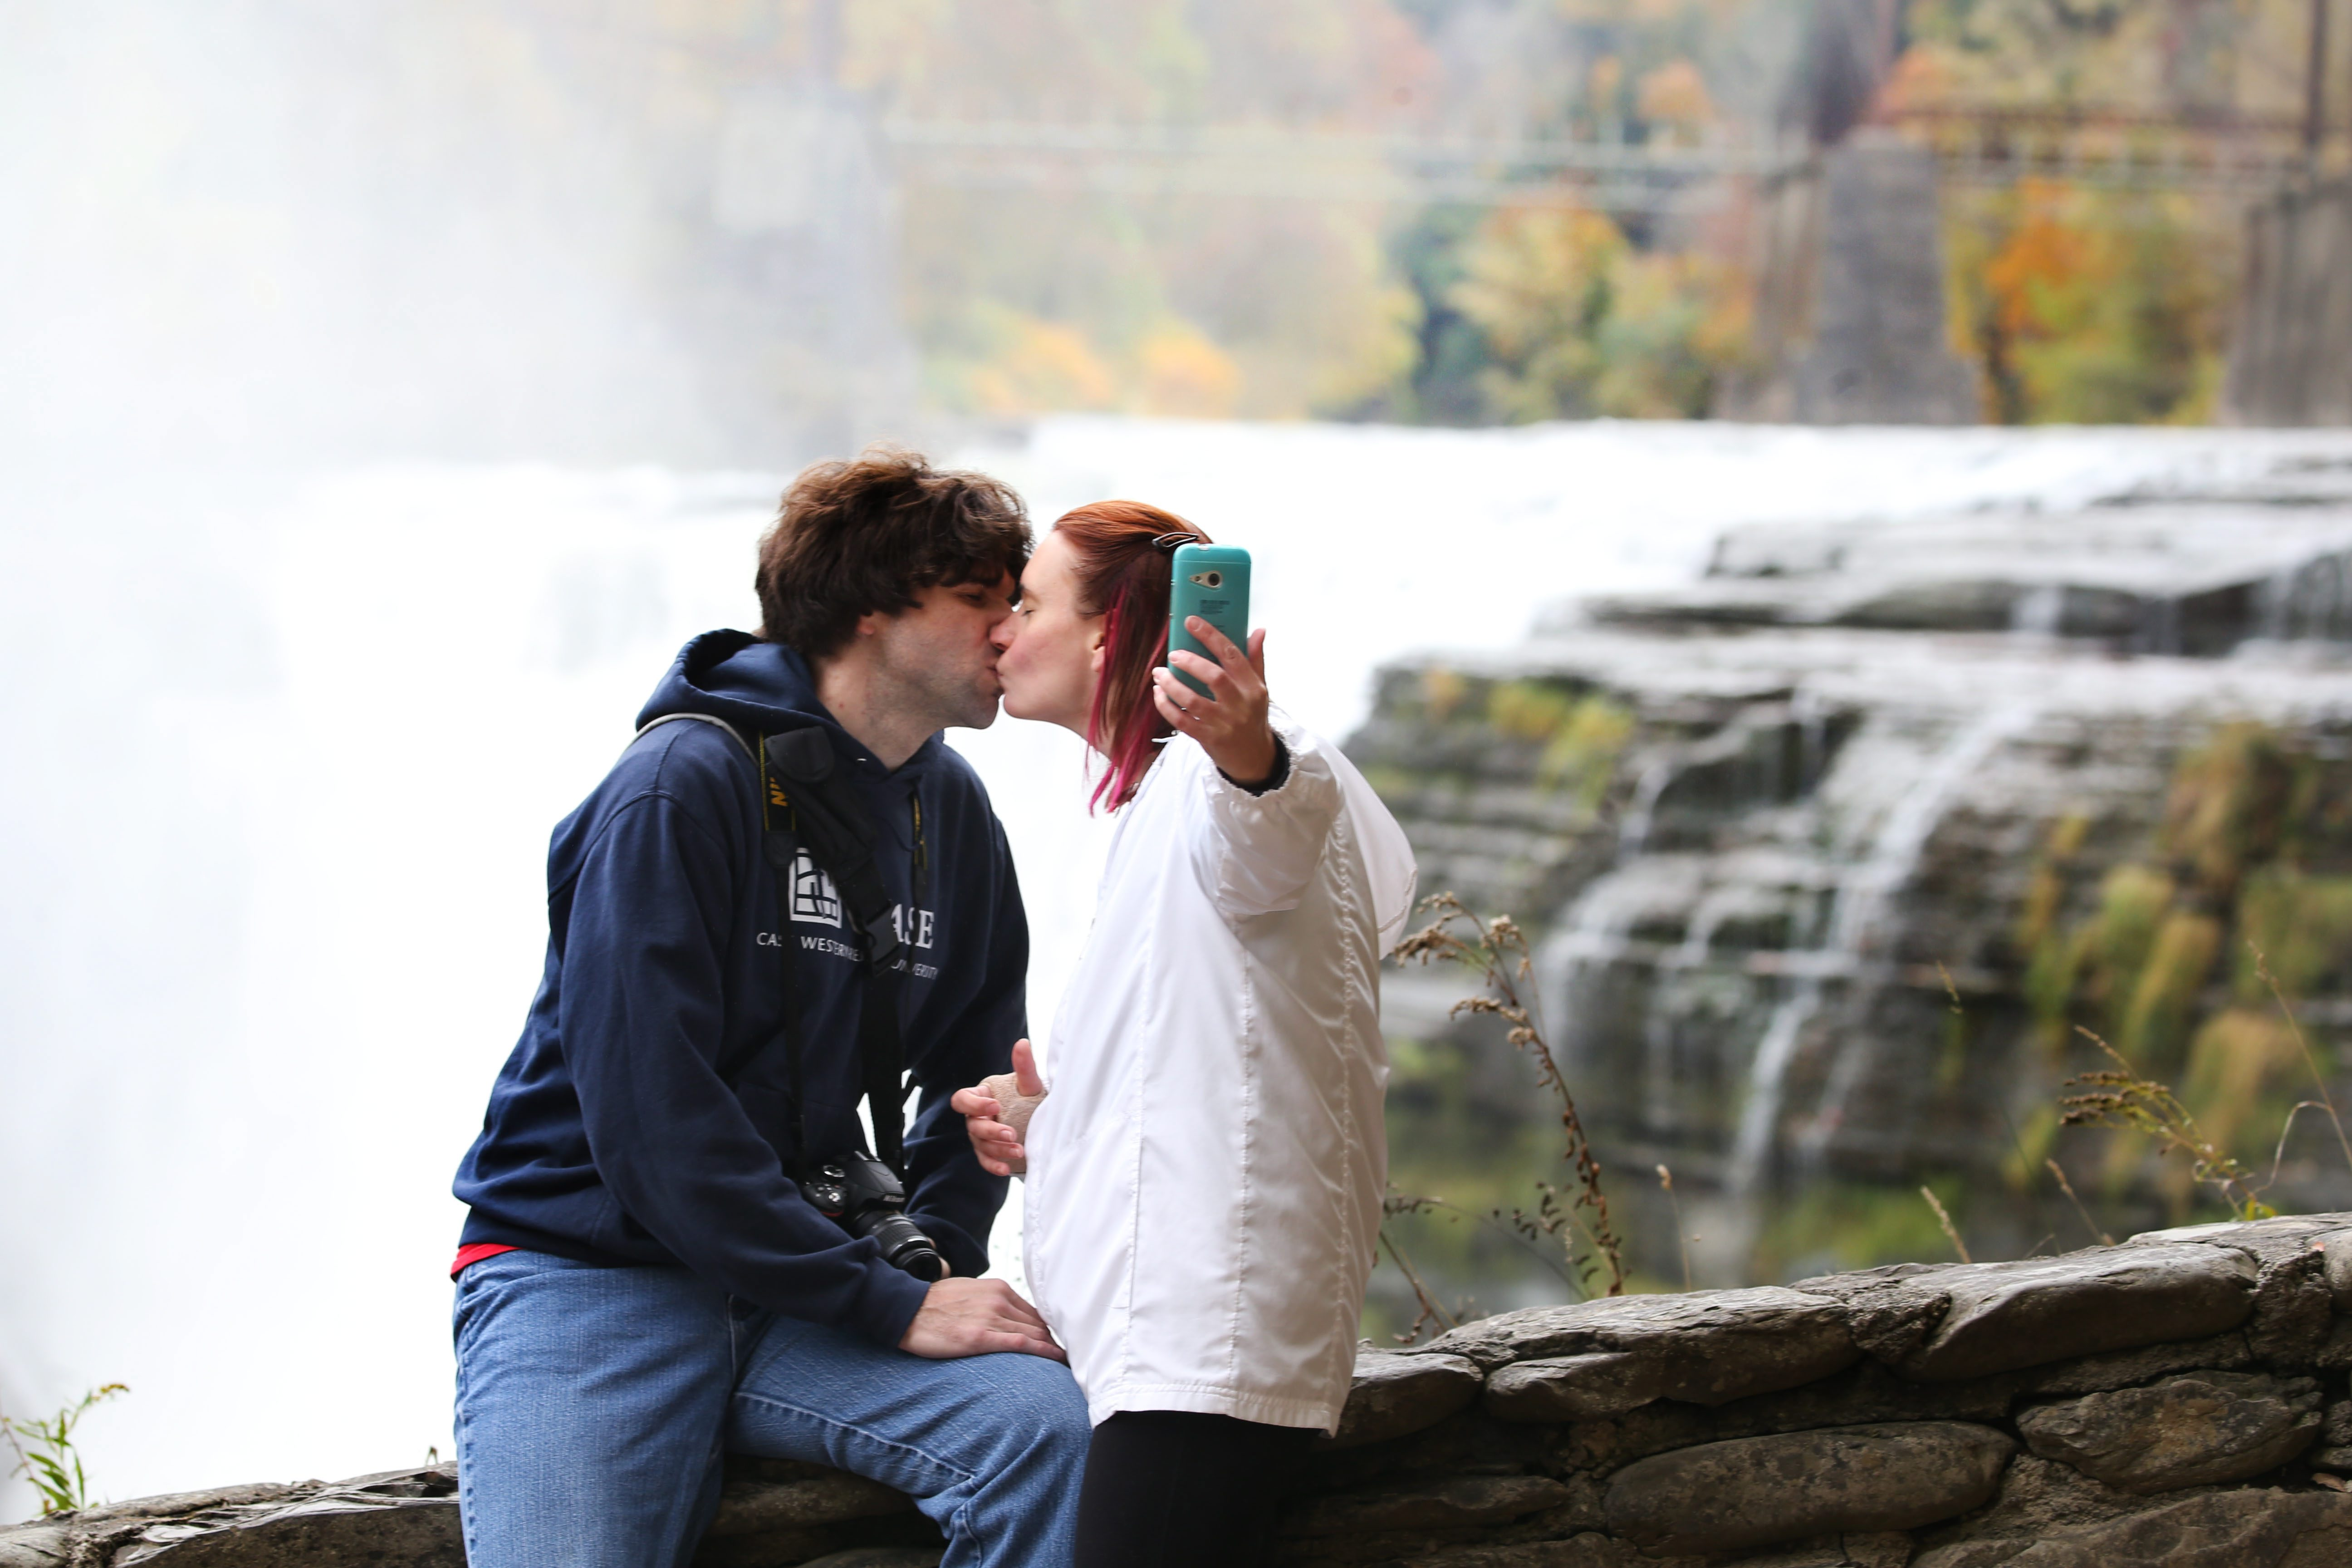 October is the most popular time of the year for Letchworth State Park. Tourists come to see the magnificence of the changing leaves in this majestic setting. Here, Chris and Angel English of Williamson take a selfie on their 7th anniversary last Oct. 14 in front of the upper falls. (Sharon Cantillon/Buffalo News)